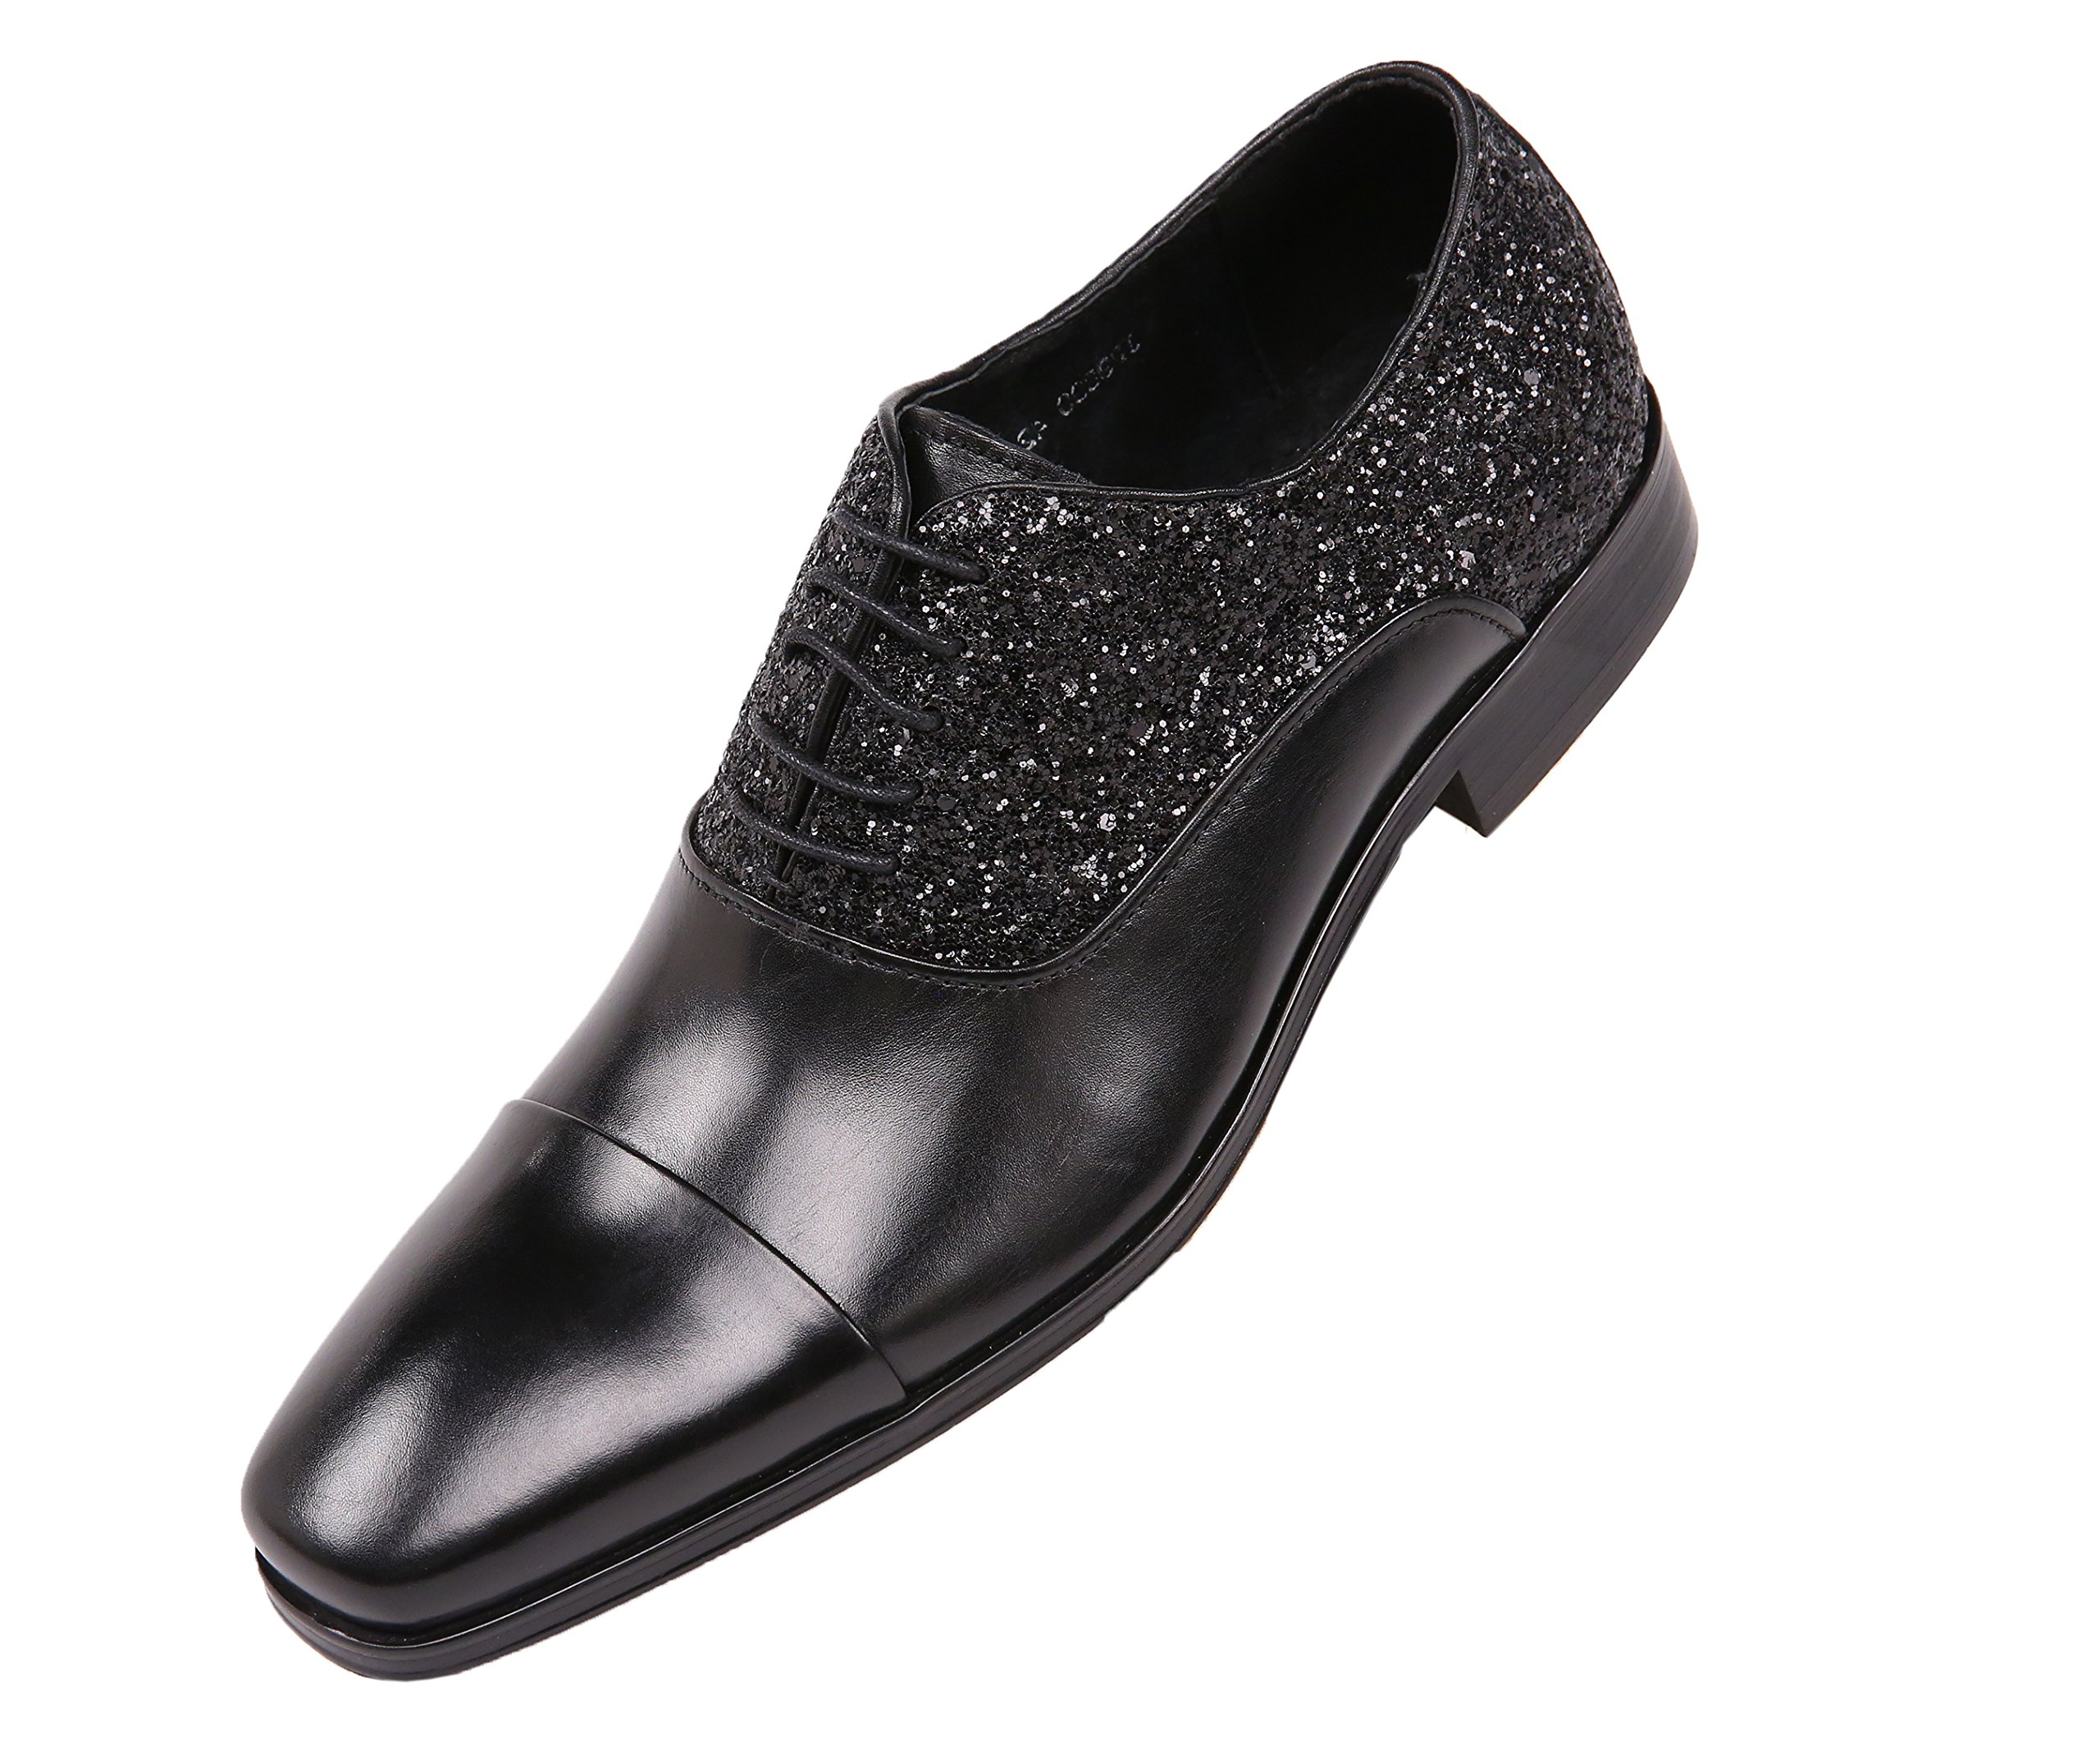 Asher Green Mens Genuine Leather and Glitter Encrusted Cap Toe, Lace up Oxford Dress Shoe, Style AG900